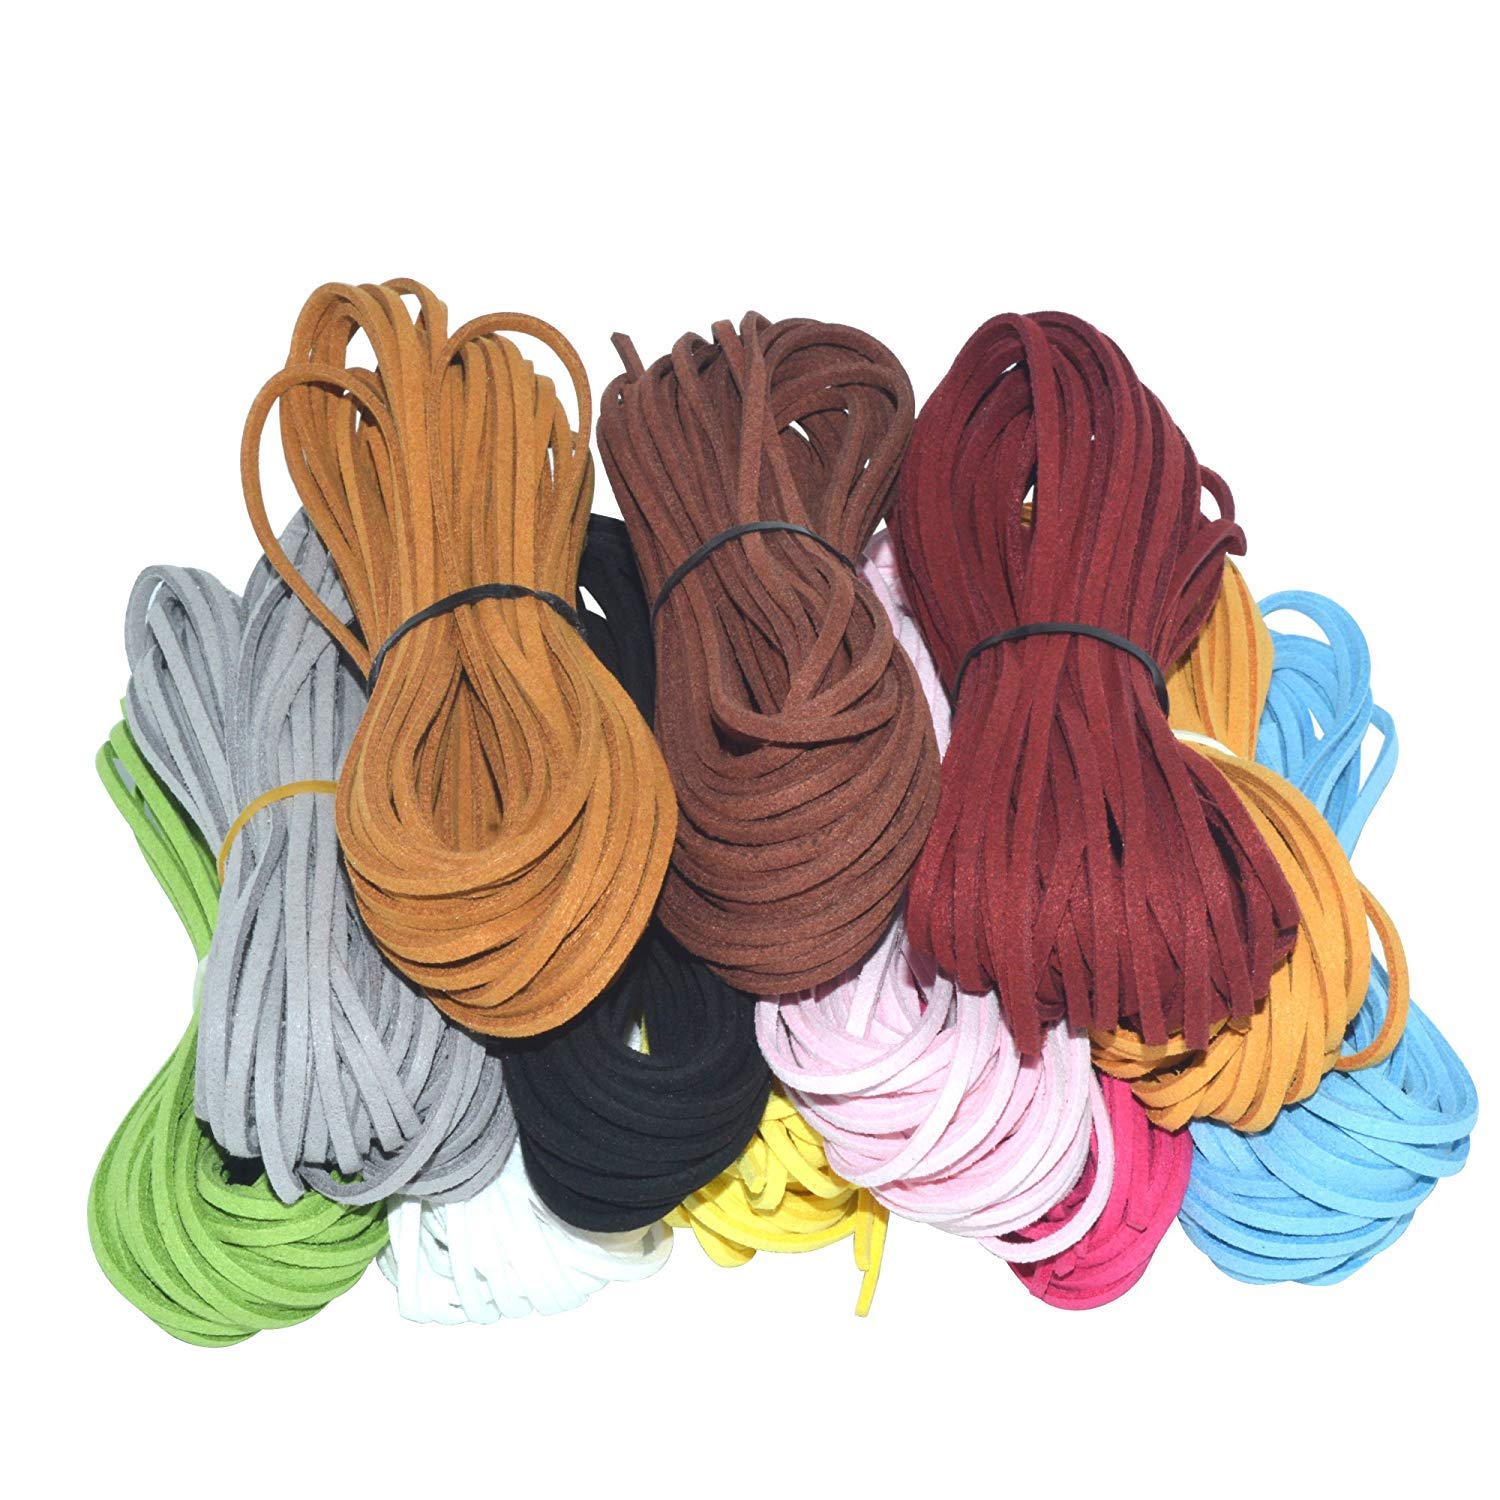 120 Yard 12 Color Suede Cord Lace Leather Cord, Doubletwo Beading Thread Jewelry Making Beading Craft Thread String- 3mm Width, Each Color 10pcs& 10 Yard, leathercord